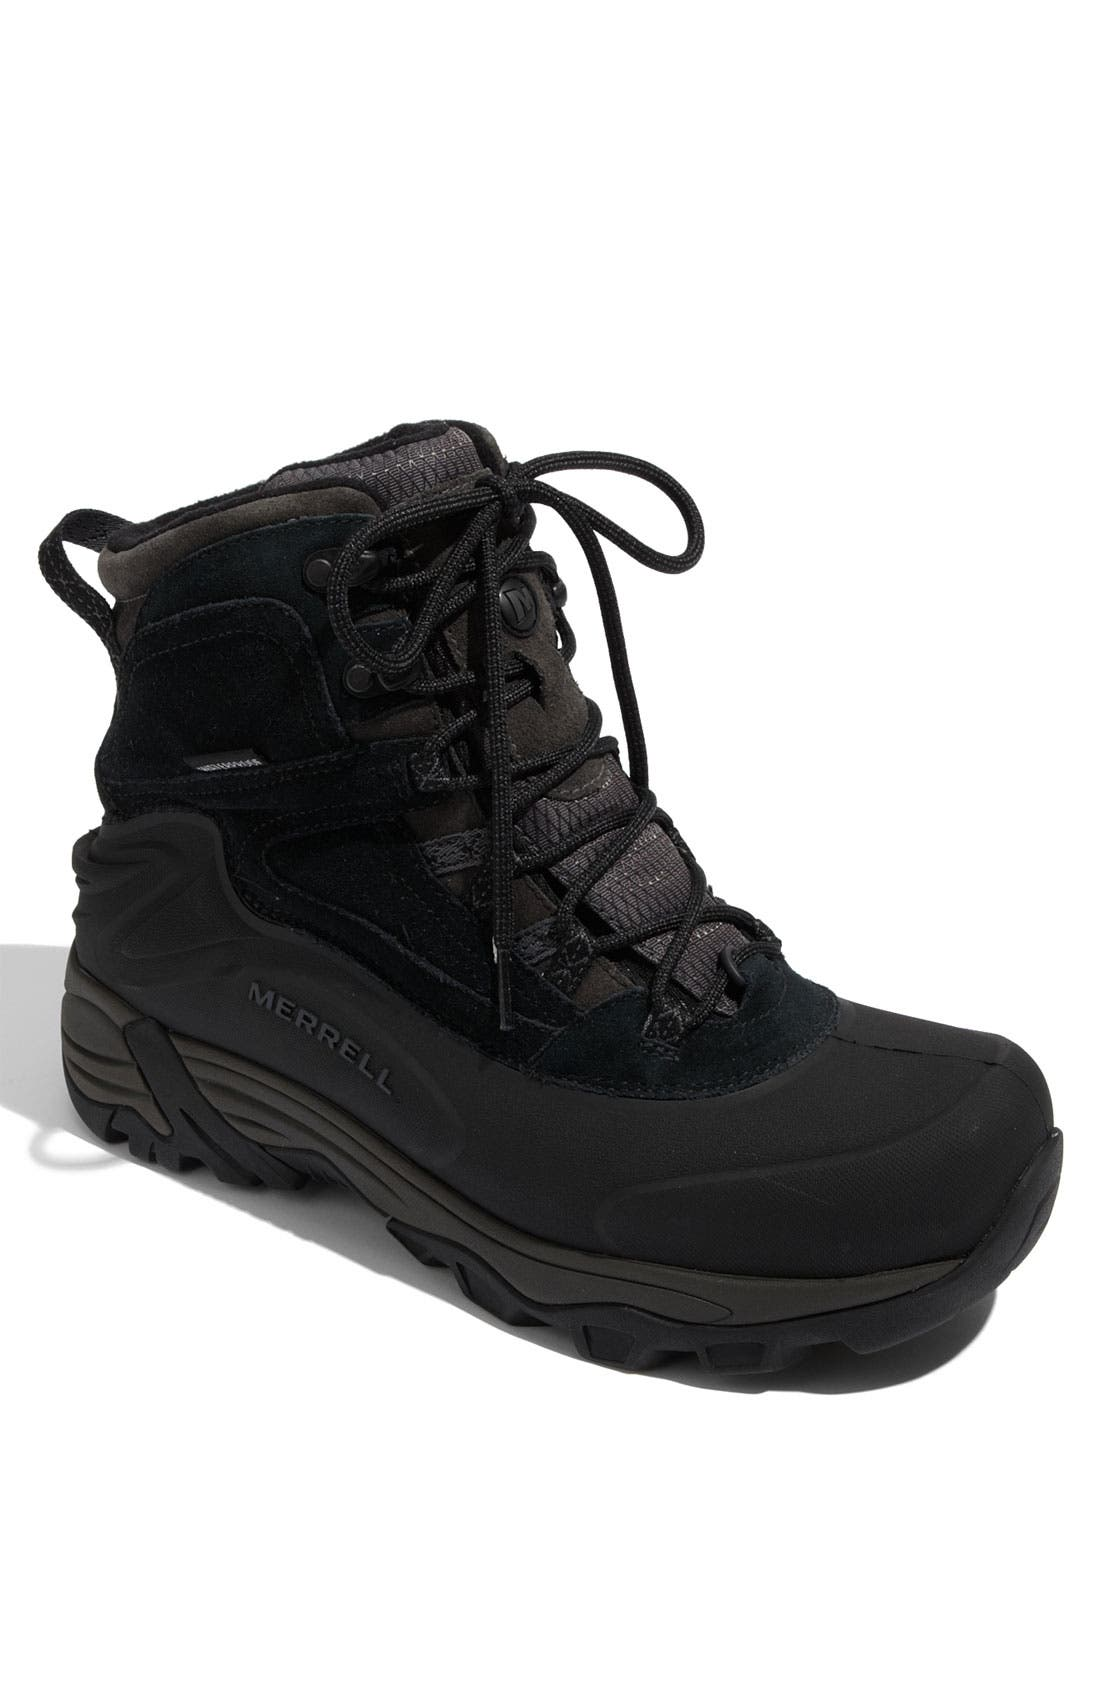 Main Image - Merrell 'Ice Jam' Waterproof Boot (Online Only)